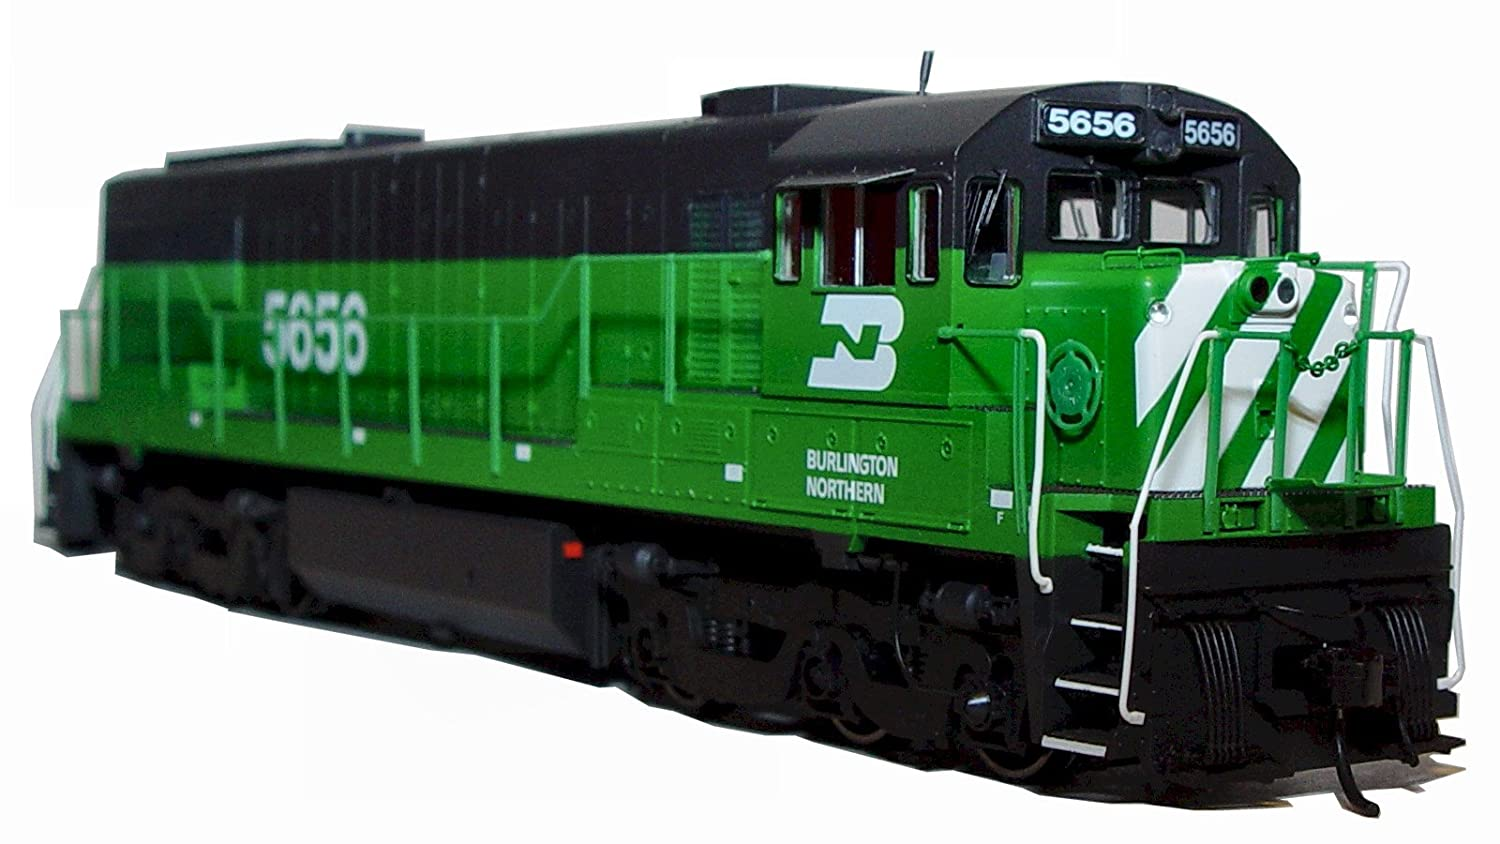 Rivaraossi HO Scale Trains Dcc Ready Burlington Northern #5656 HR2621 General Electric U28C Diesel Locomotive Train